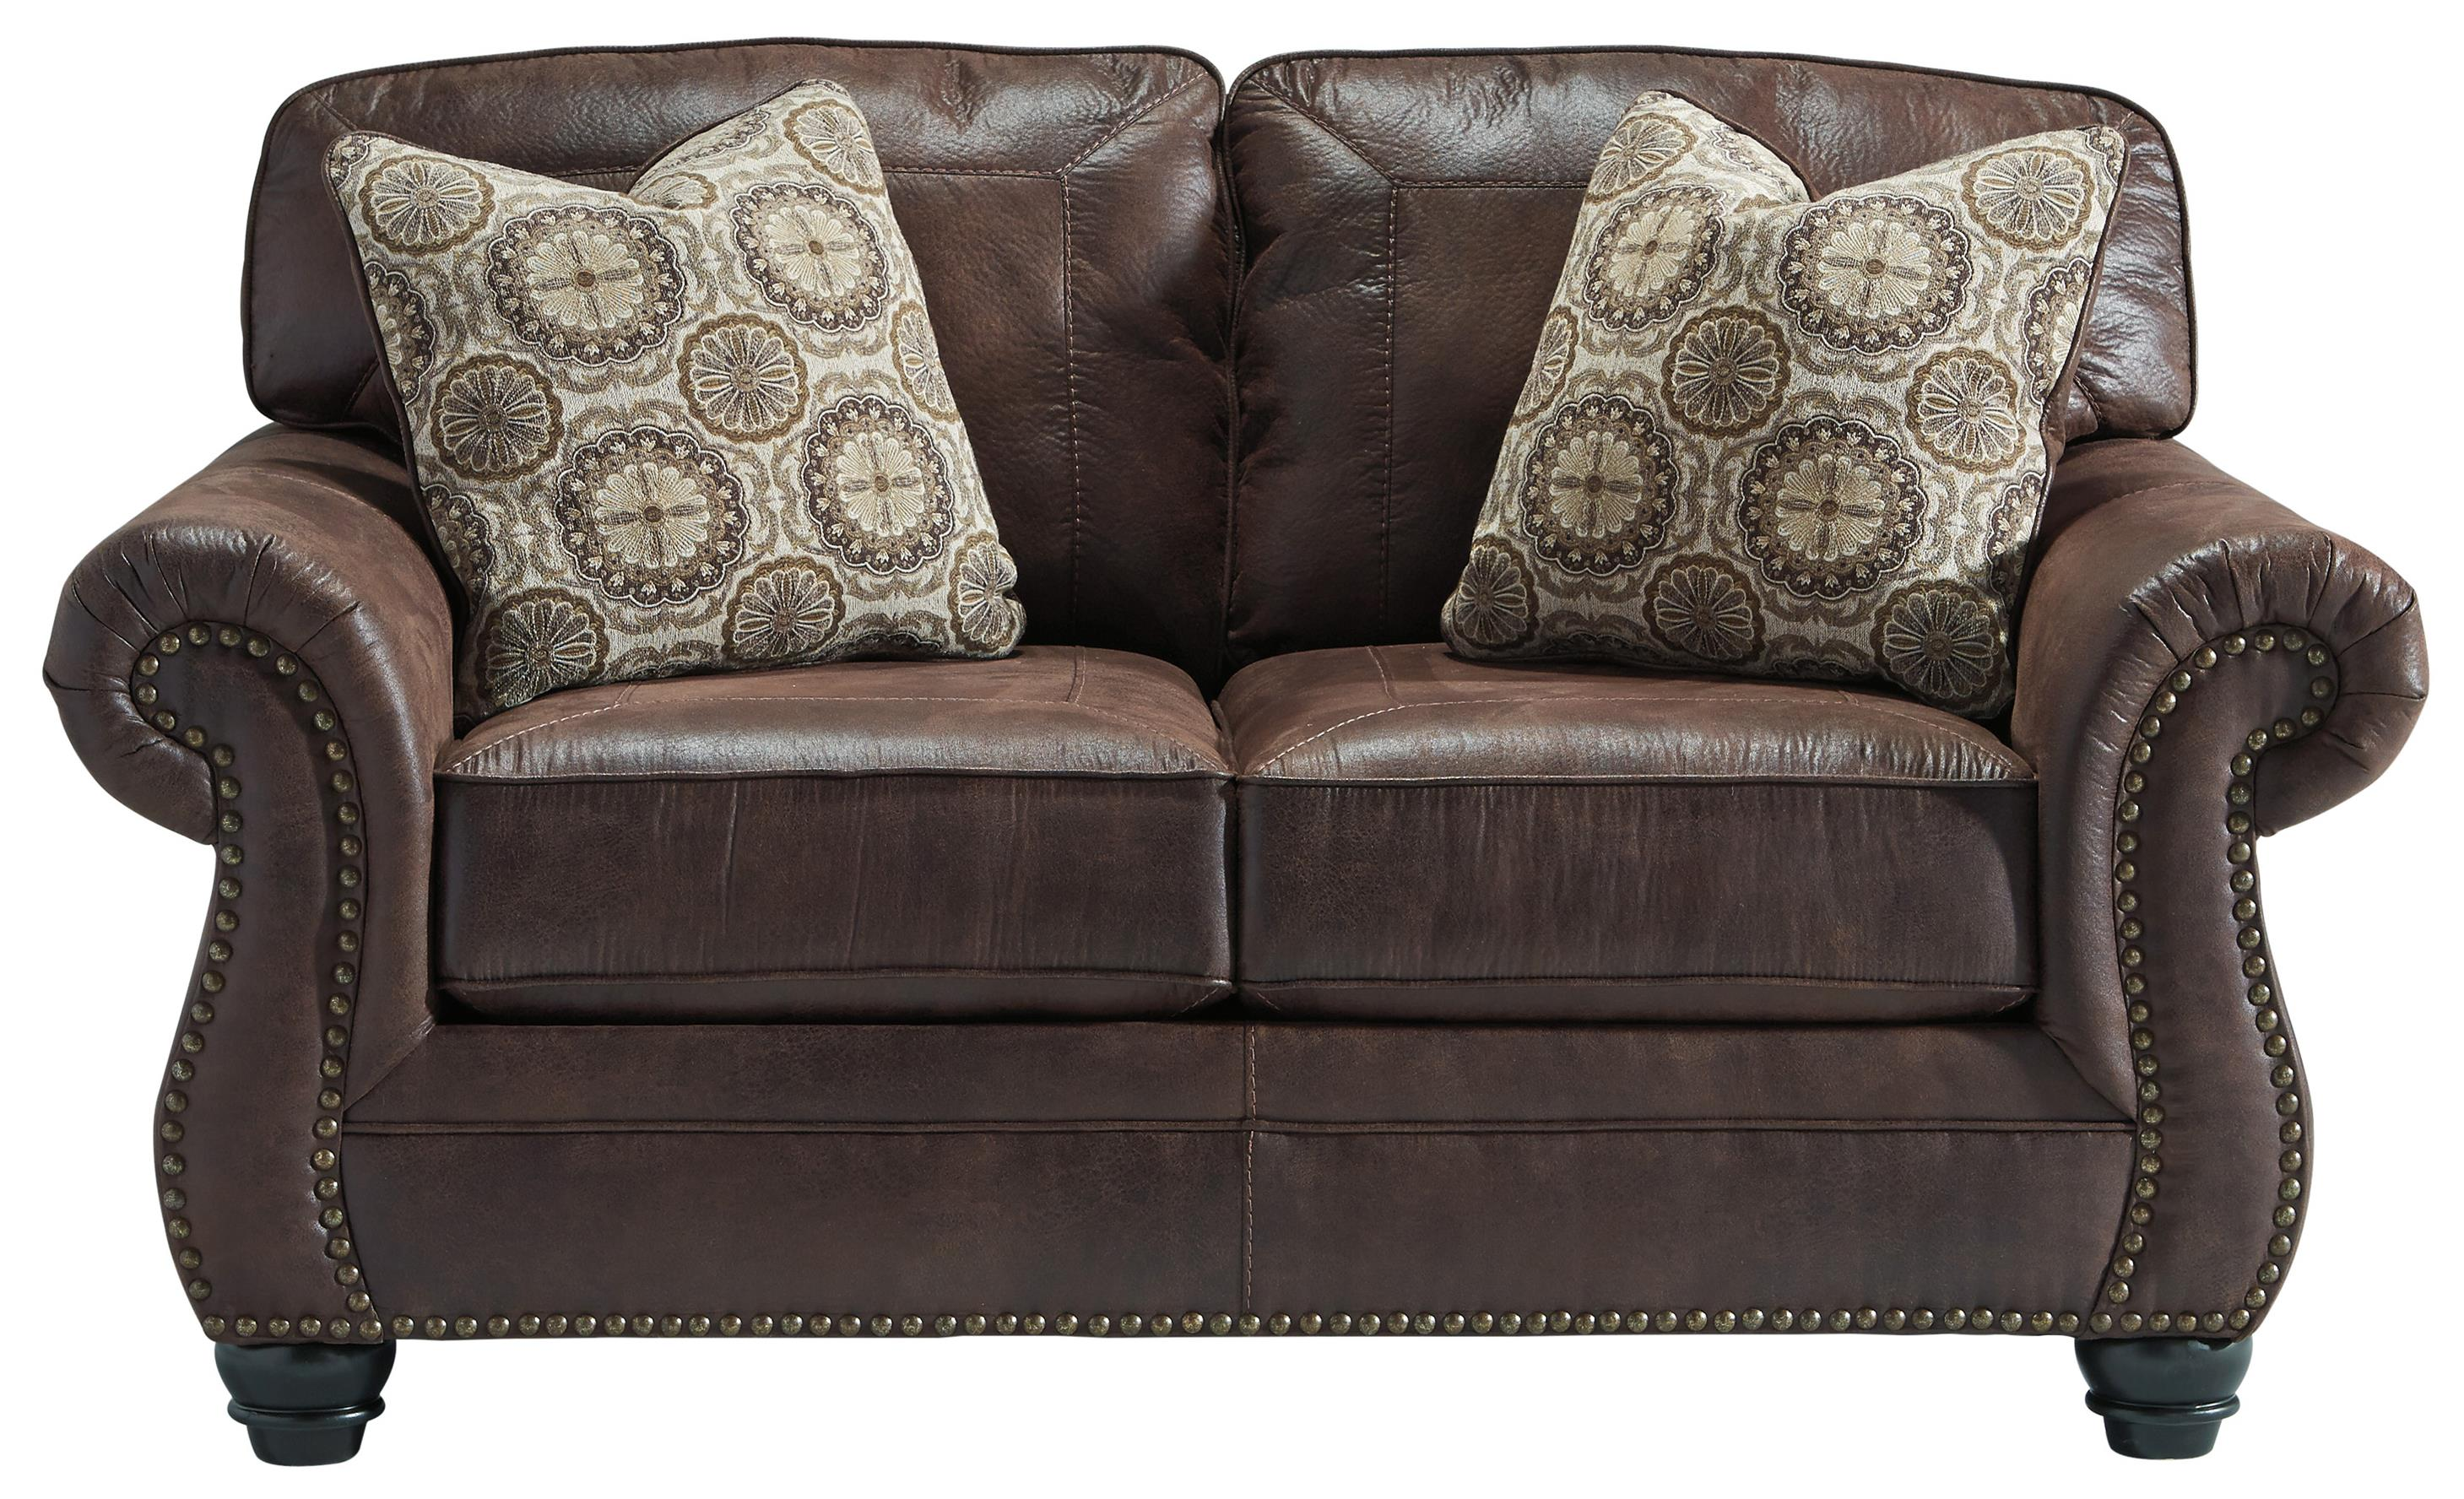 Breville Loveseat by Benchcraft at Simply Home by Lindy's